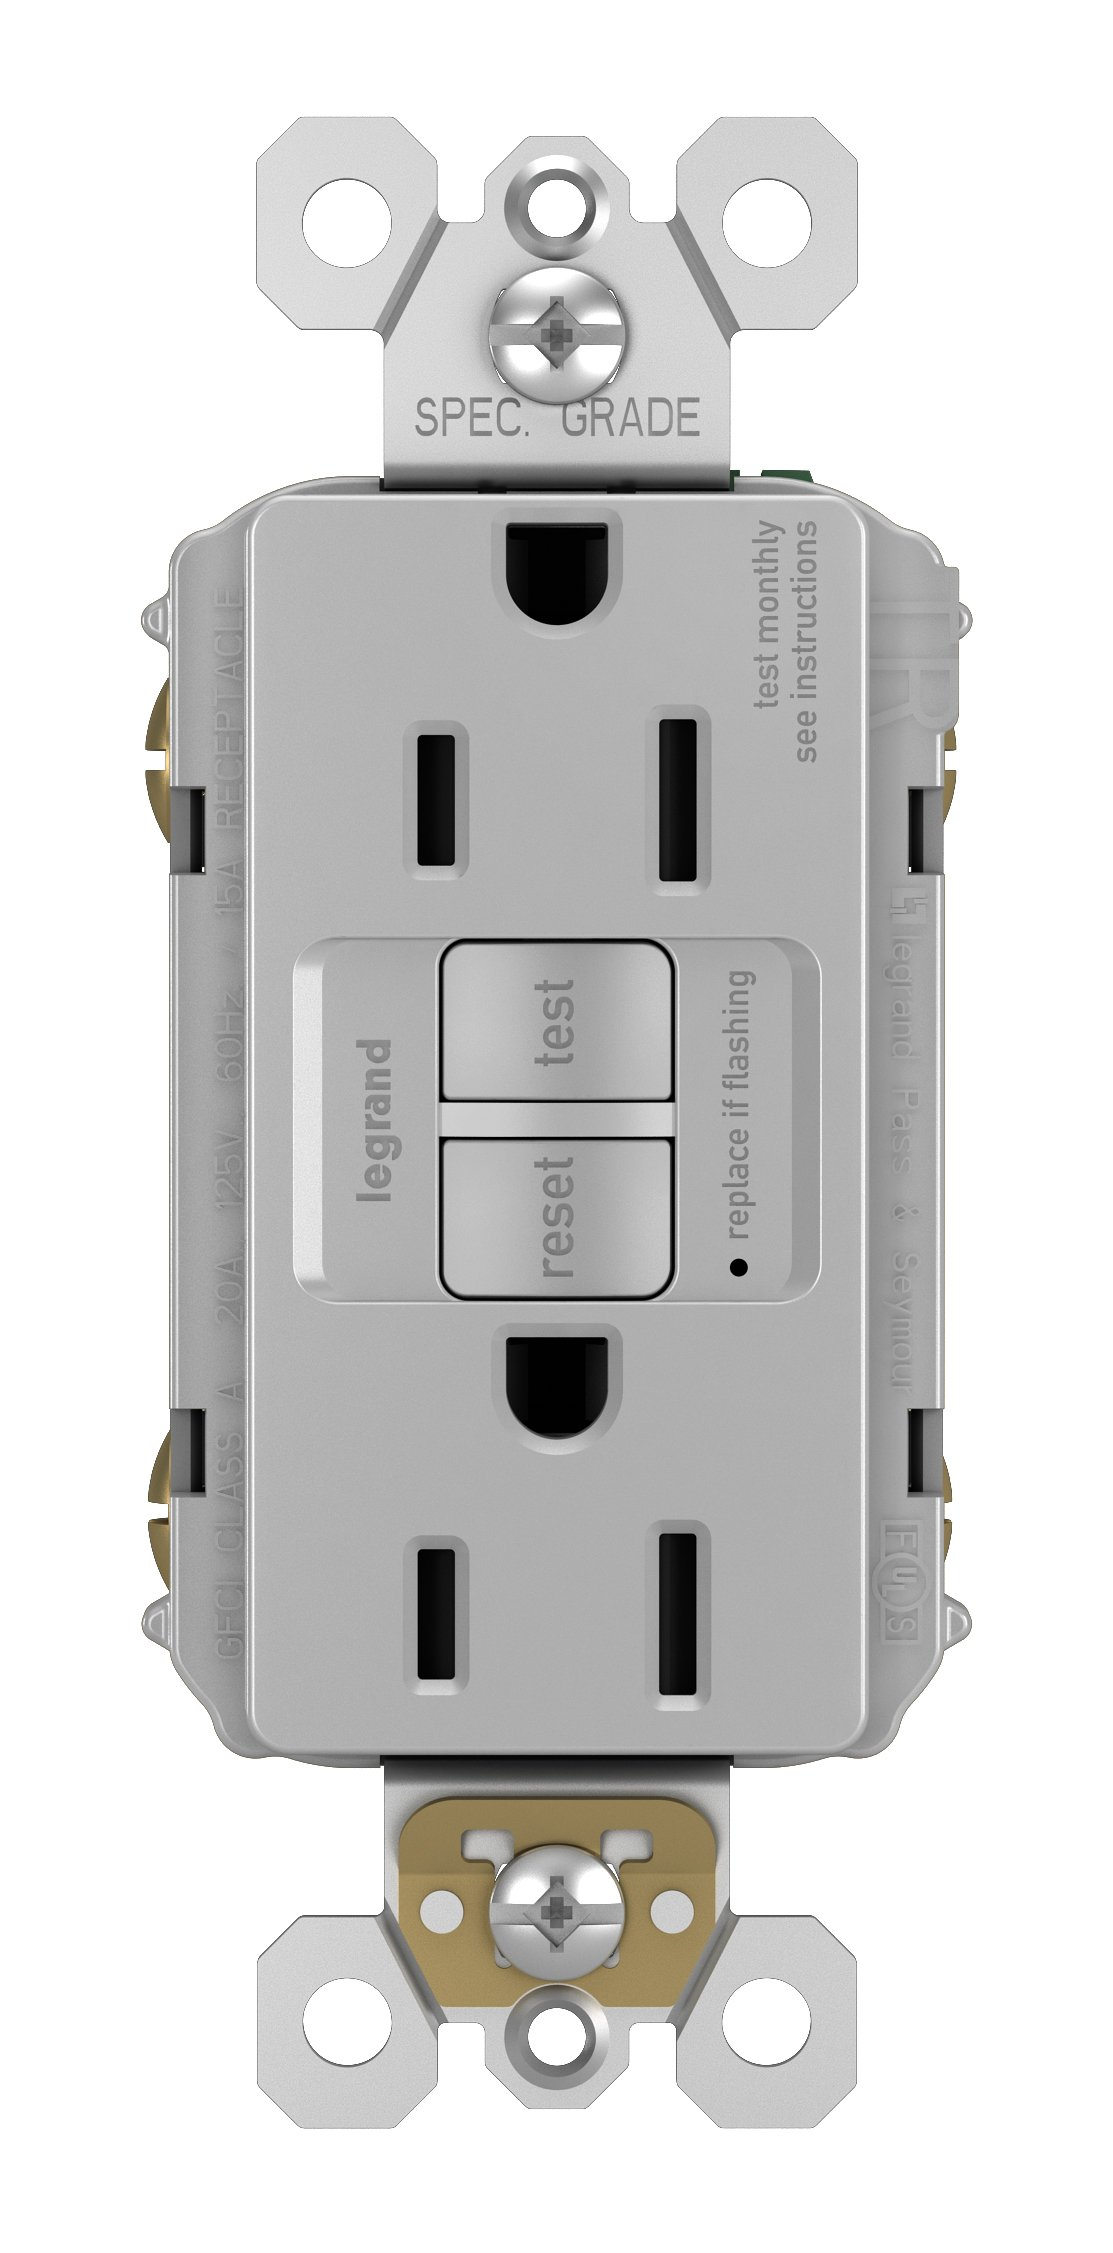 Legrand-Pass & Seymour 1597GRYCCD12 Self-Test GFCI Receptacle Outlet with Wall Plate, 15Amp 125V, Gray